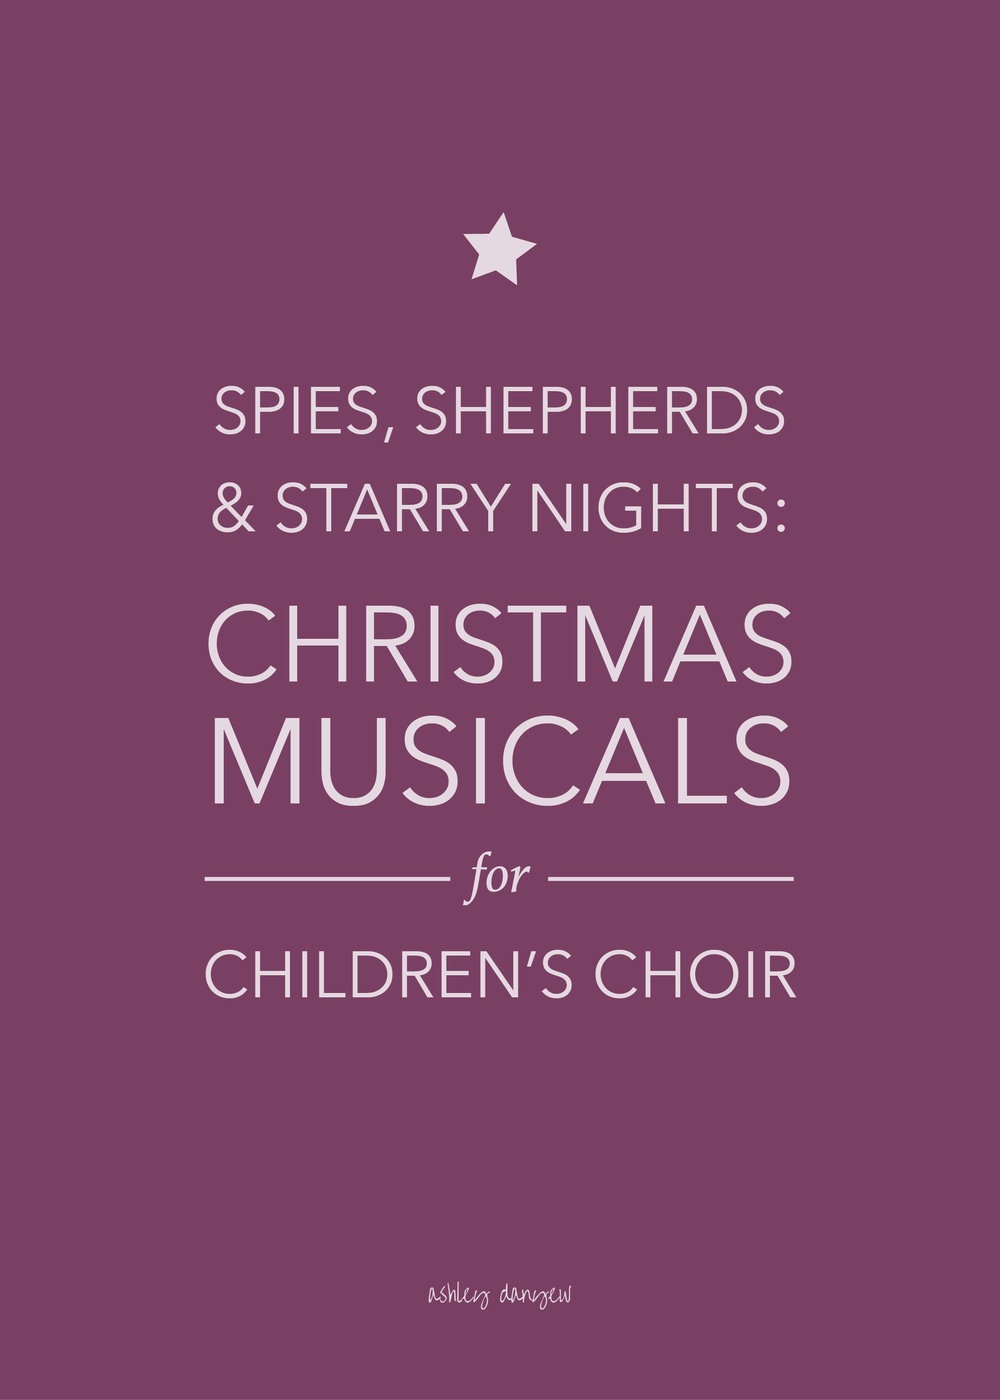 Christmas Musicals for Children's Choir-01.png